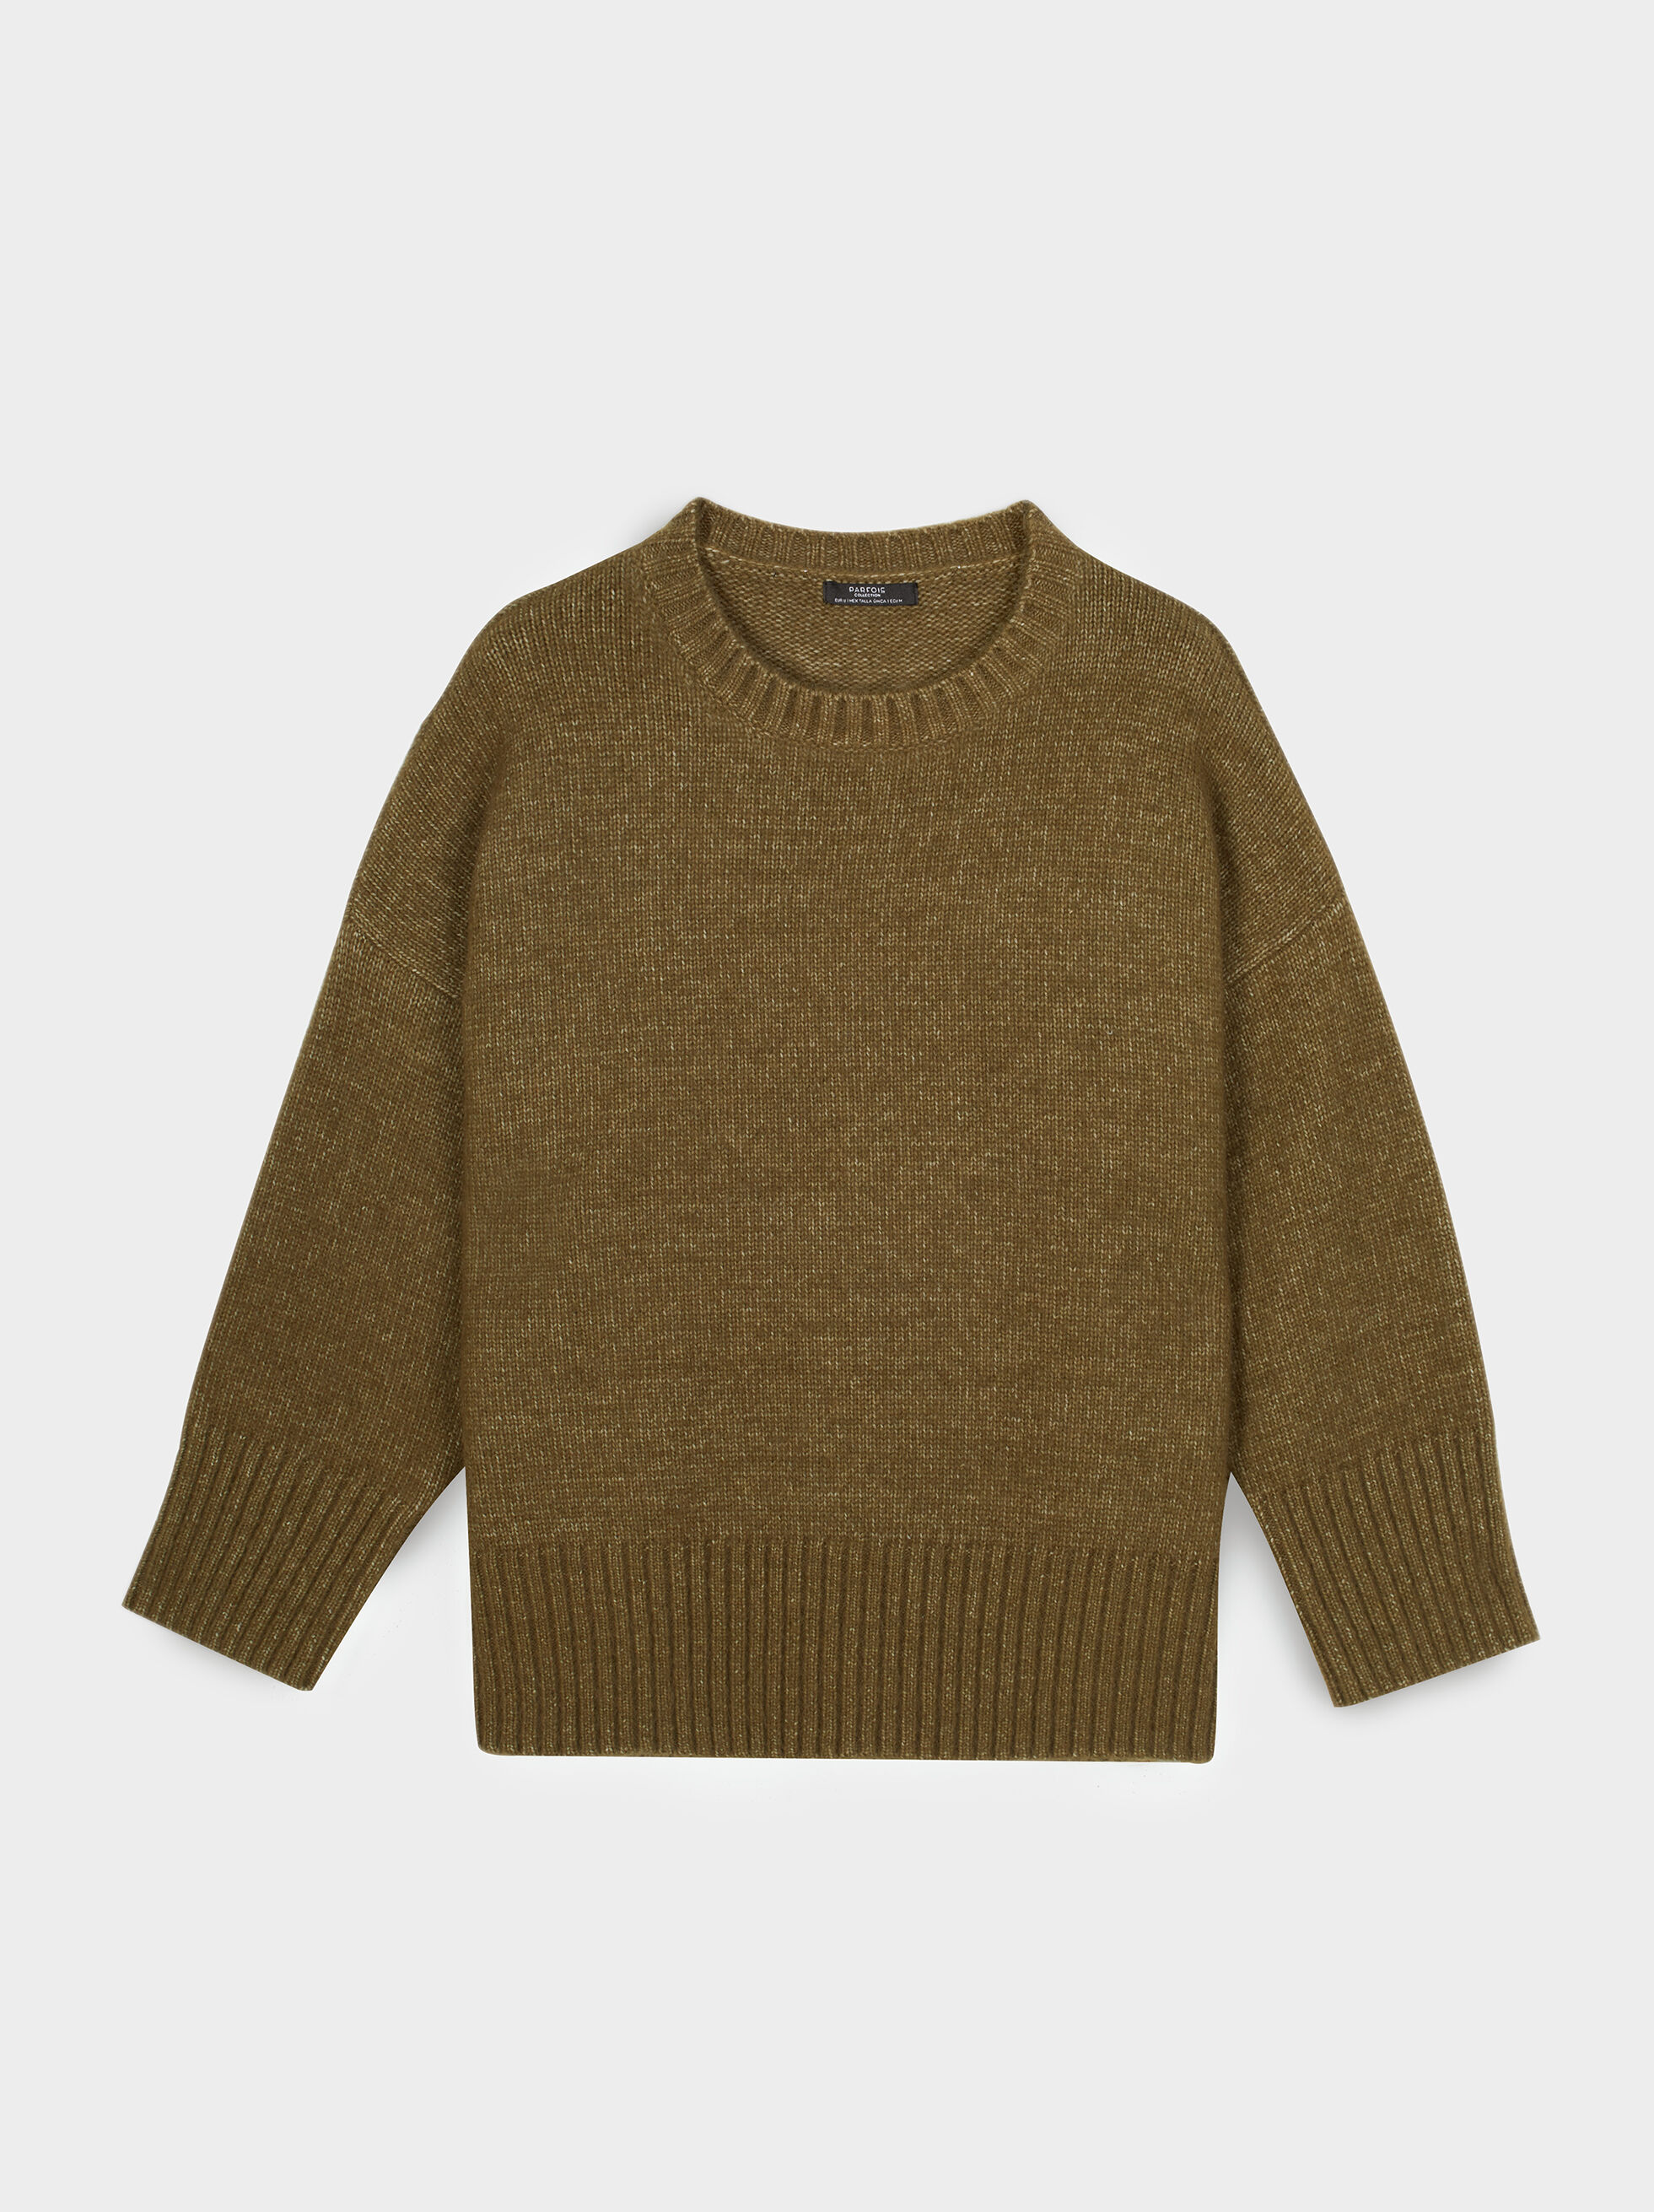 Knit Sweater With Ribbed Cuffs, Green, hi-res